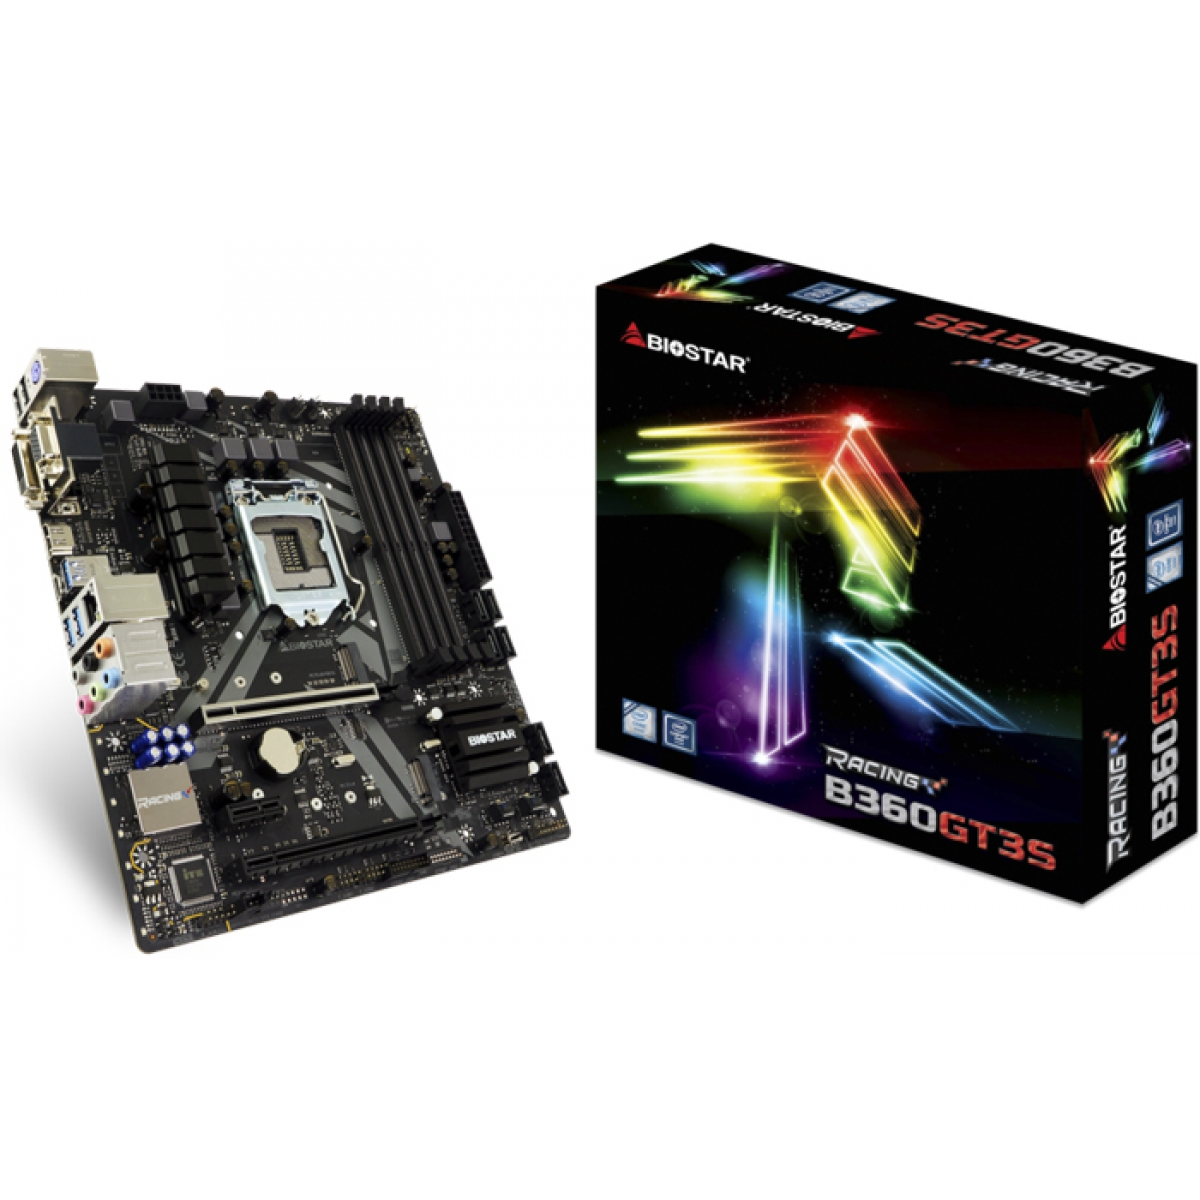 Placa Mãe Biostar Racing B360GT3S, Chipset B360, Intel LGA 1151, mATX, DDR4